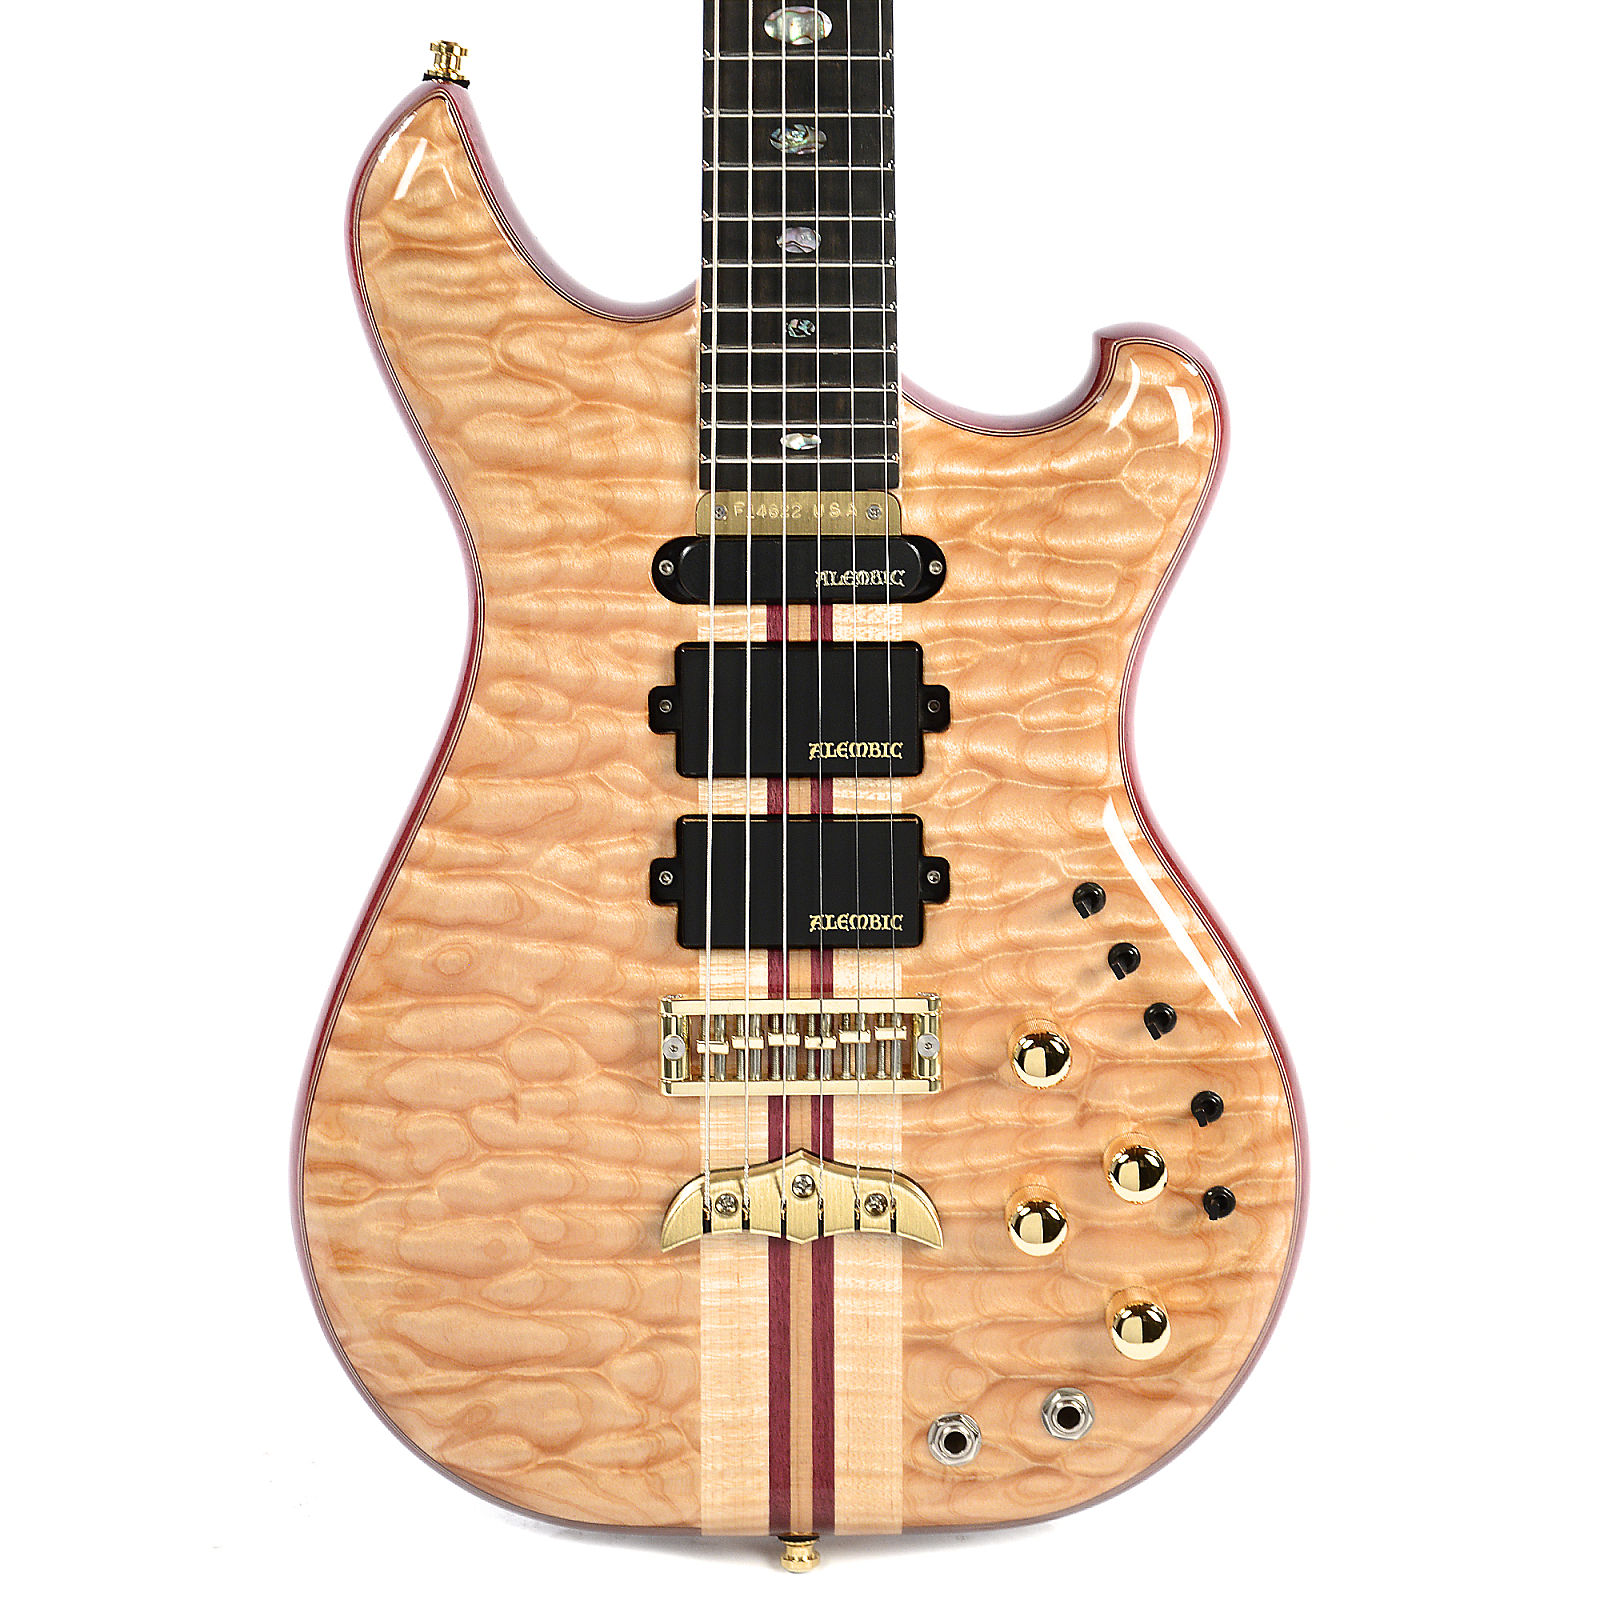 Alembic Further 5A Quilted Maple Top Flame Maple Back Purpleheart Core w/Hardshell Case (S#F14622)